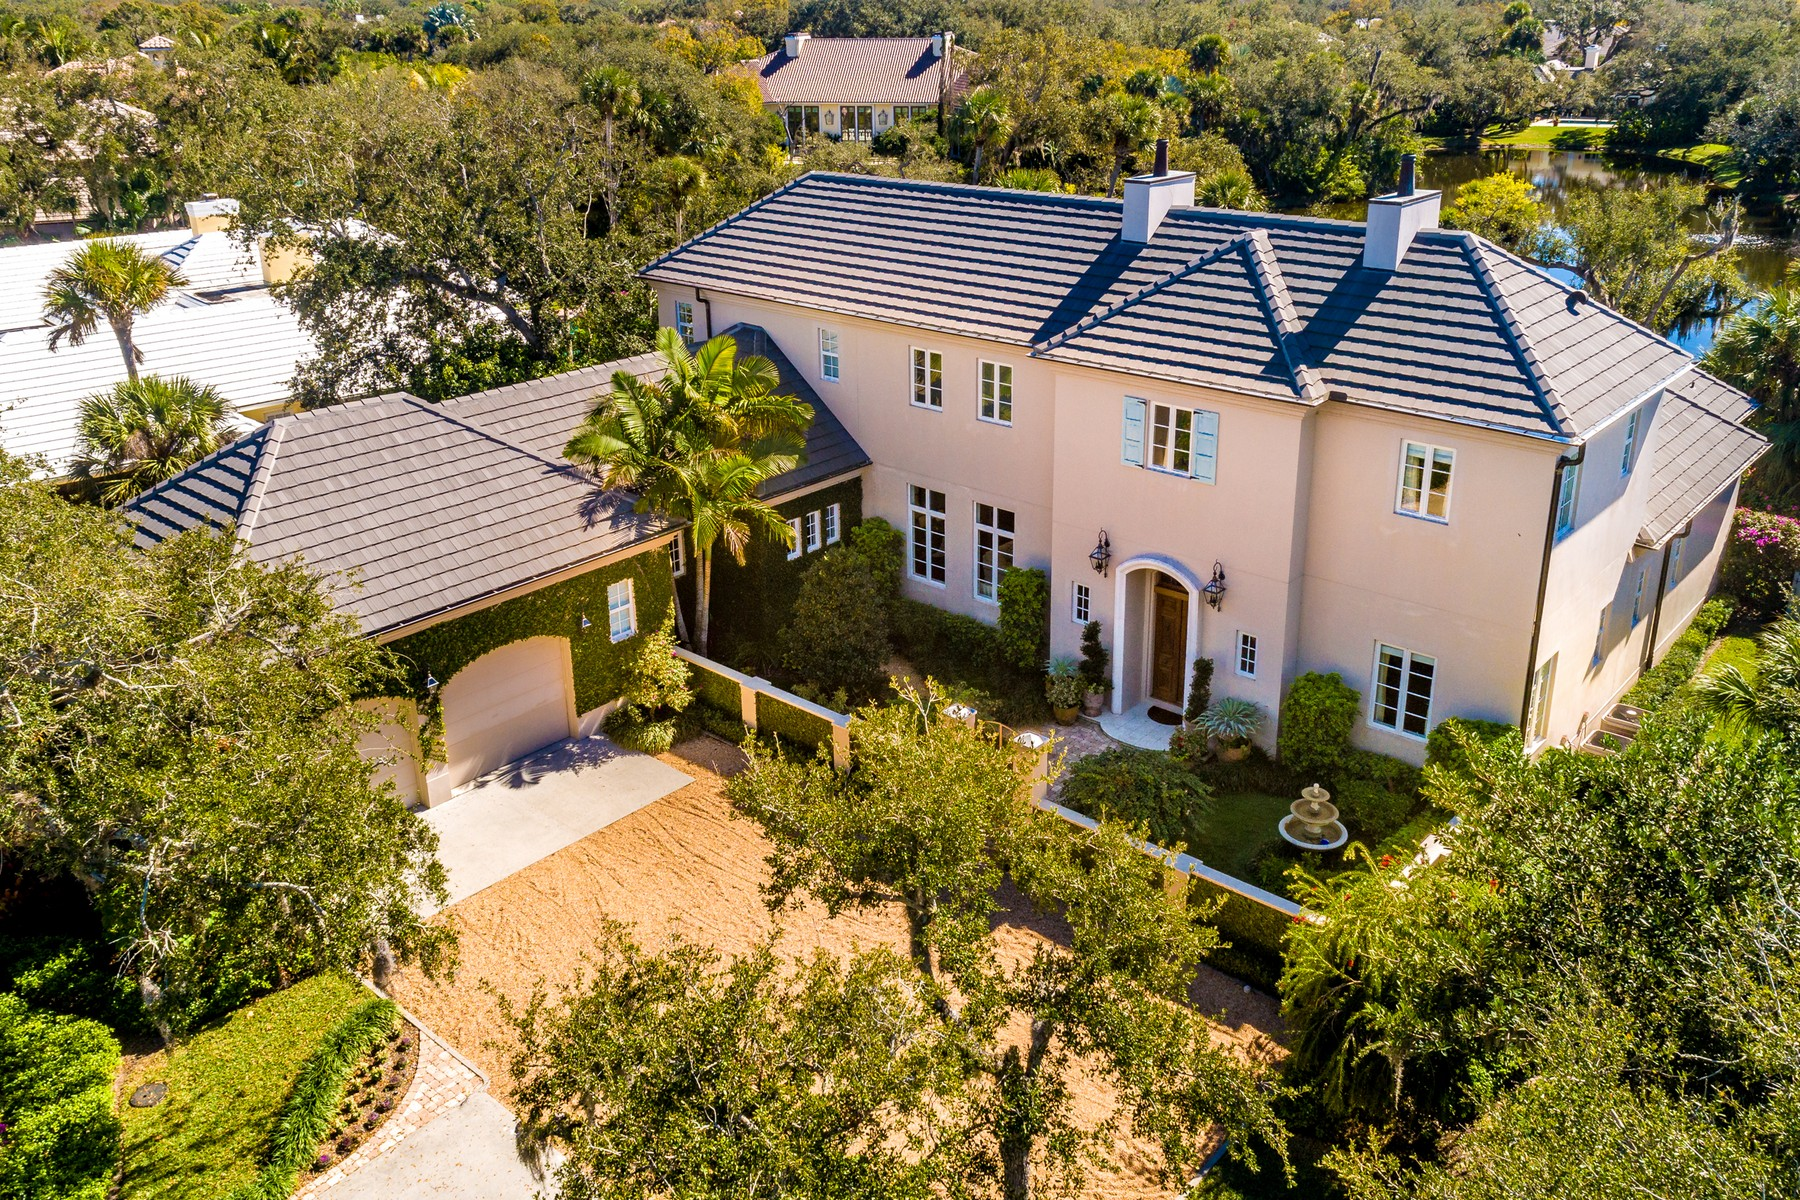 Single Family Homes for Sale at Impeccable Lakefront Estate 131 Shores Drive Vero Beach, Florida 32963 United States